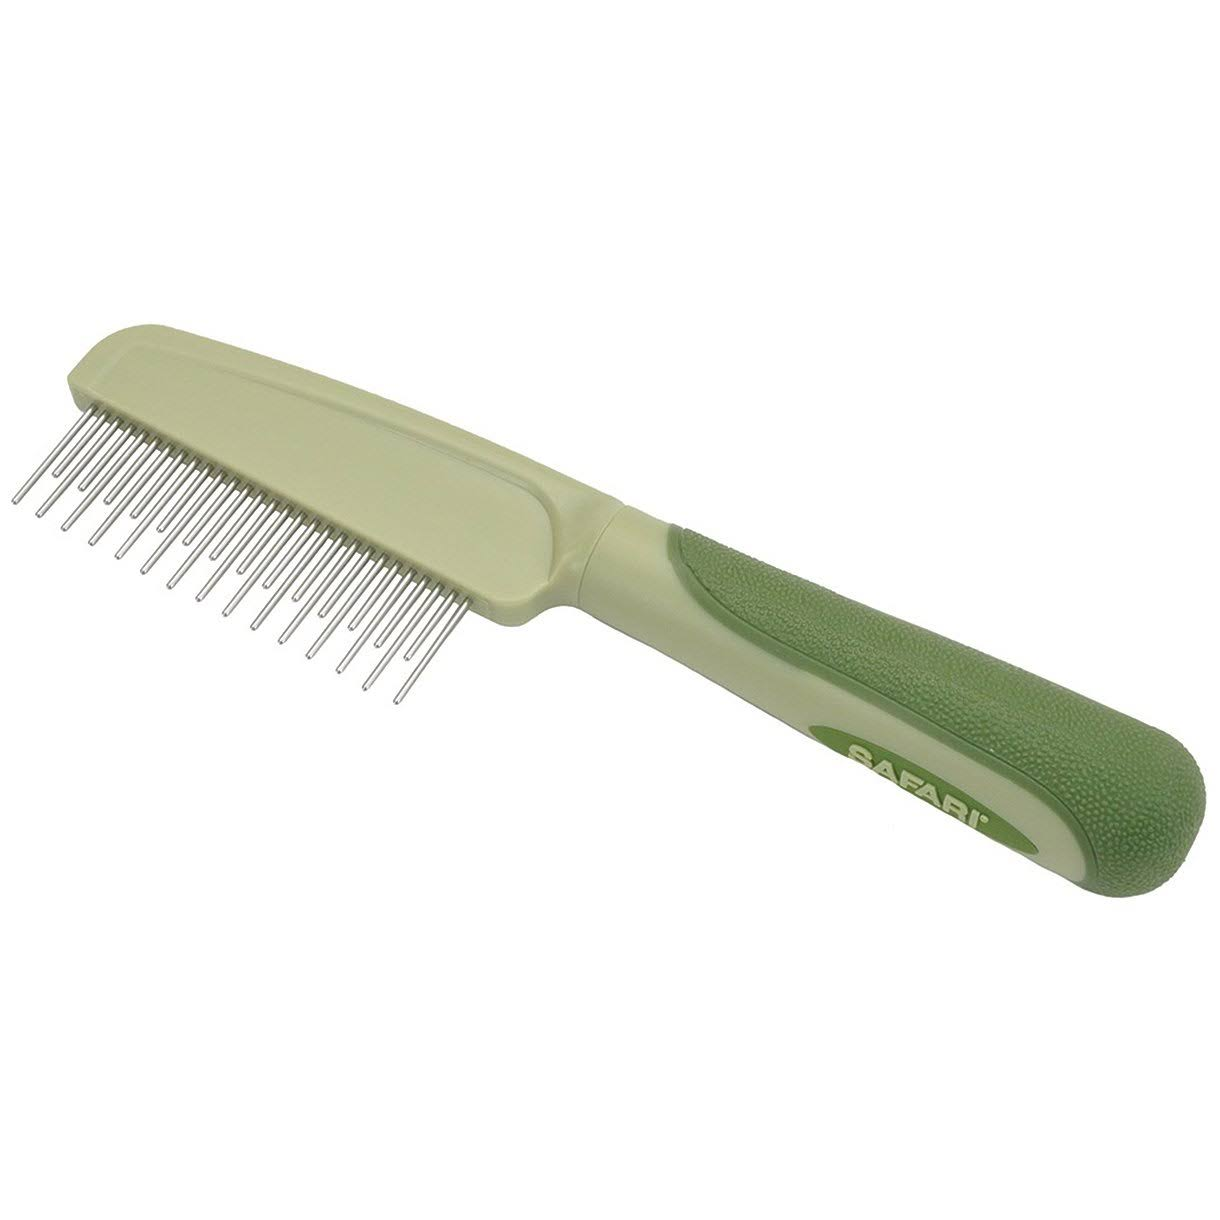 - Safari Dog Shedding Comb with Rotating Teeth